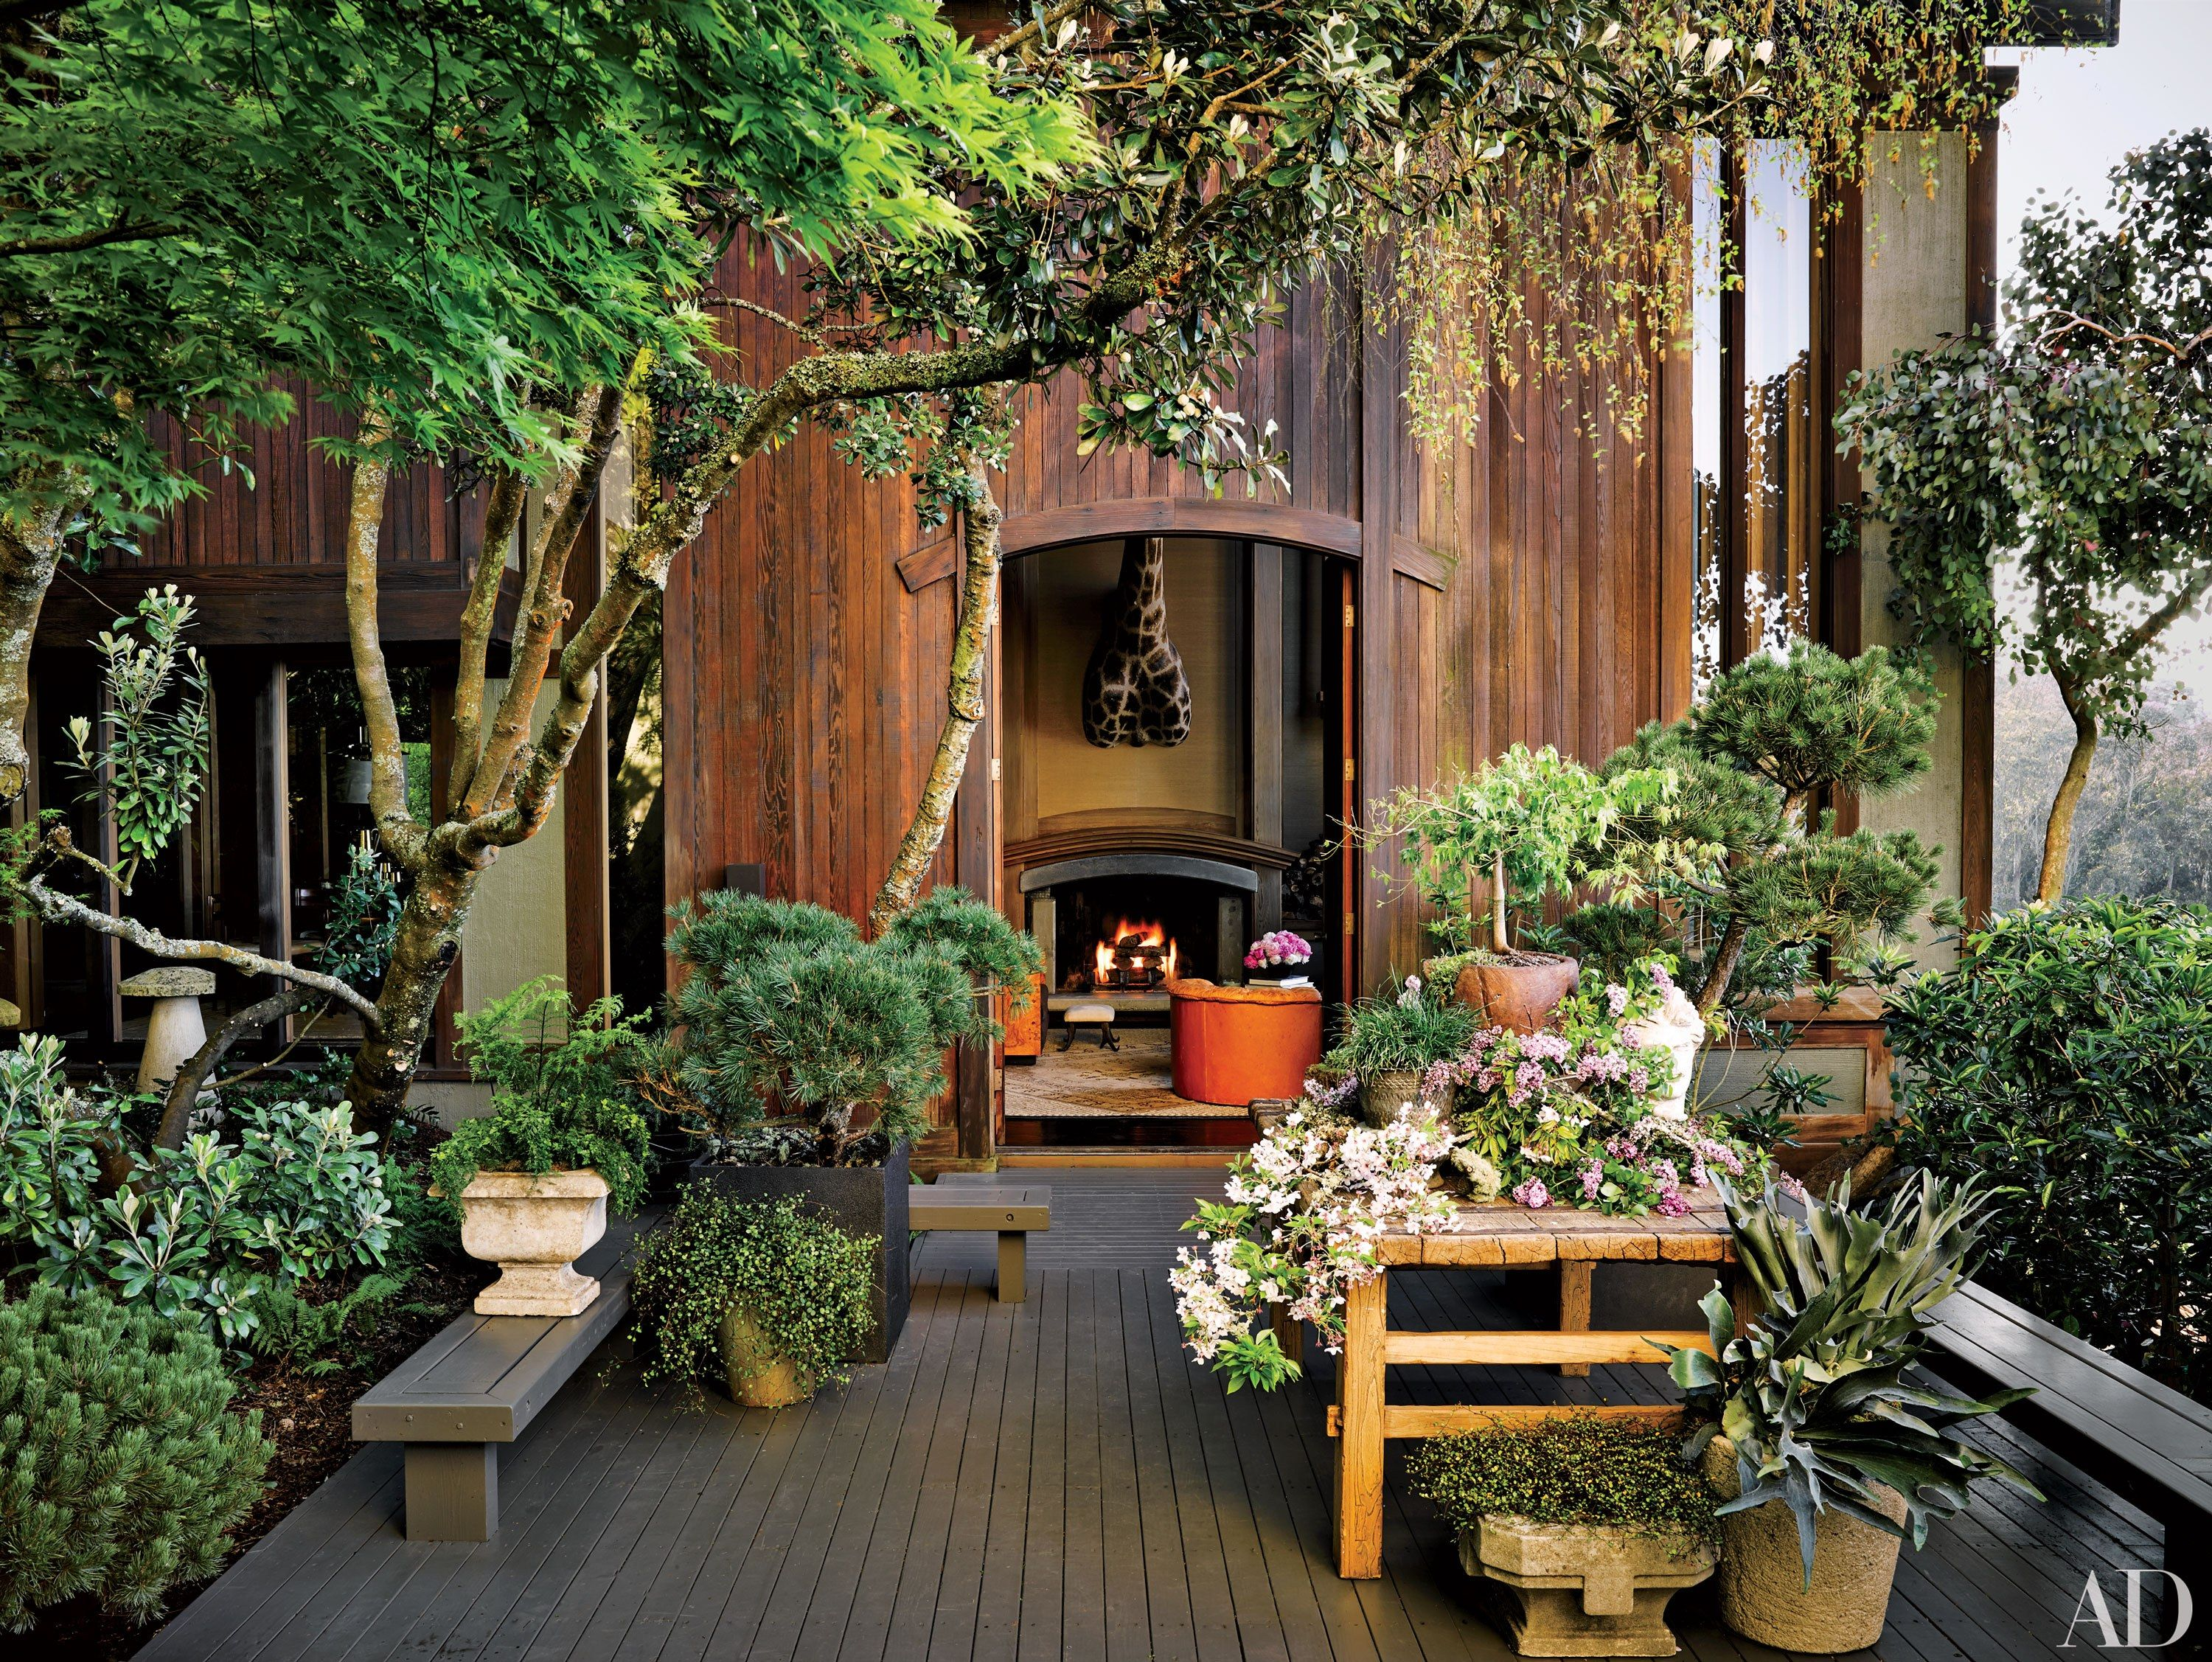 Landscaped Homes 52 beautifully landscaped home gardens | garden photos